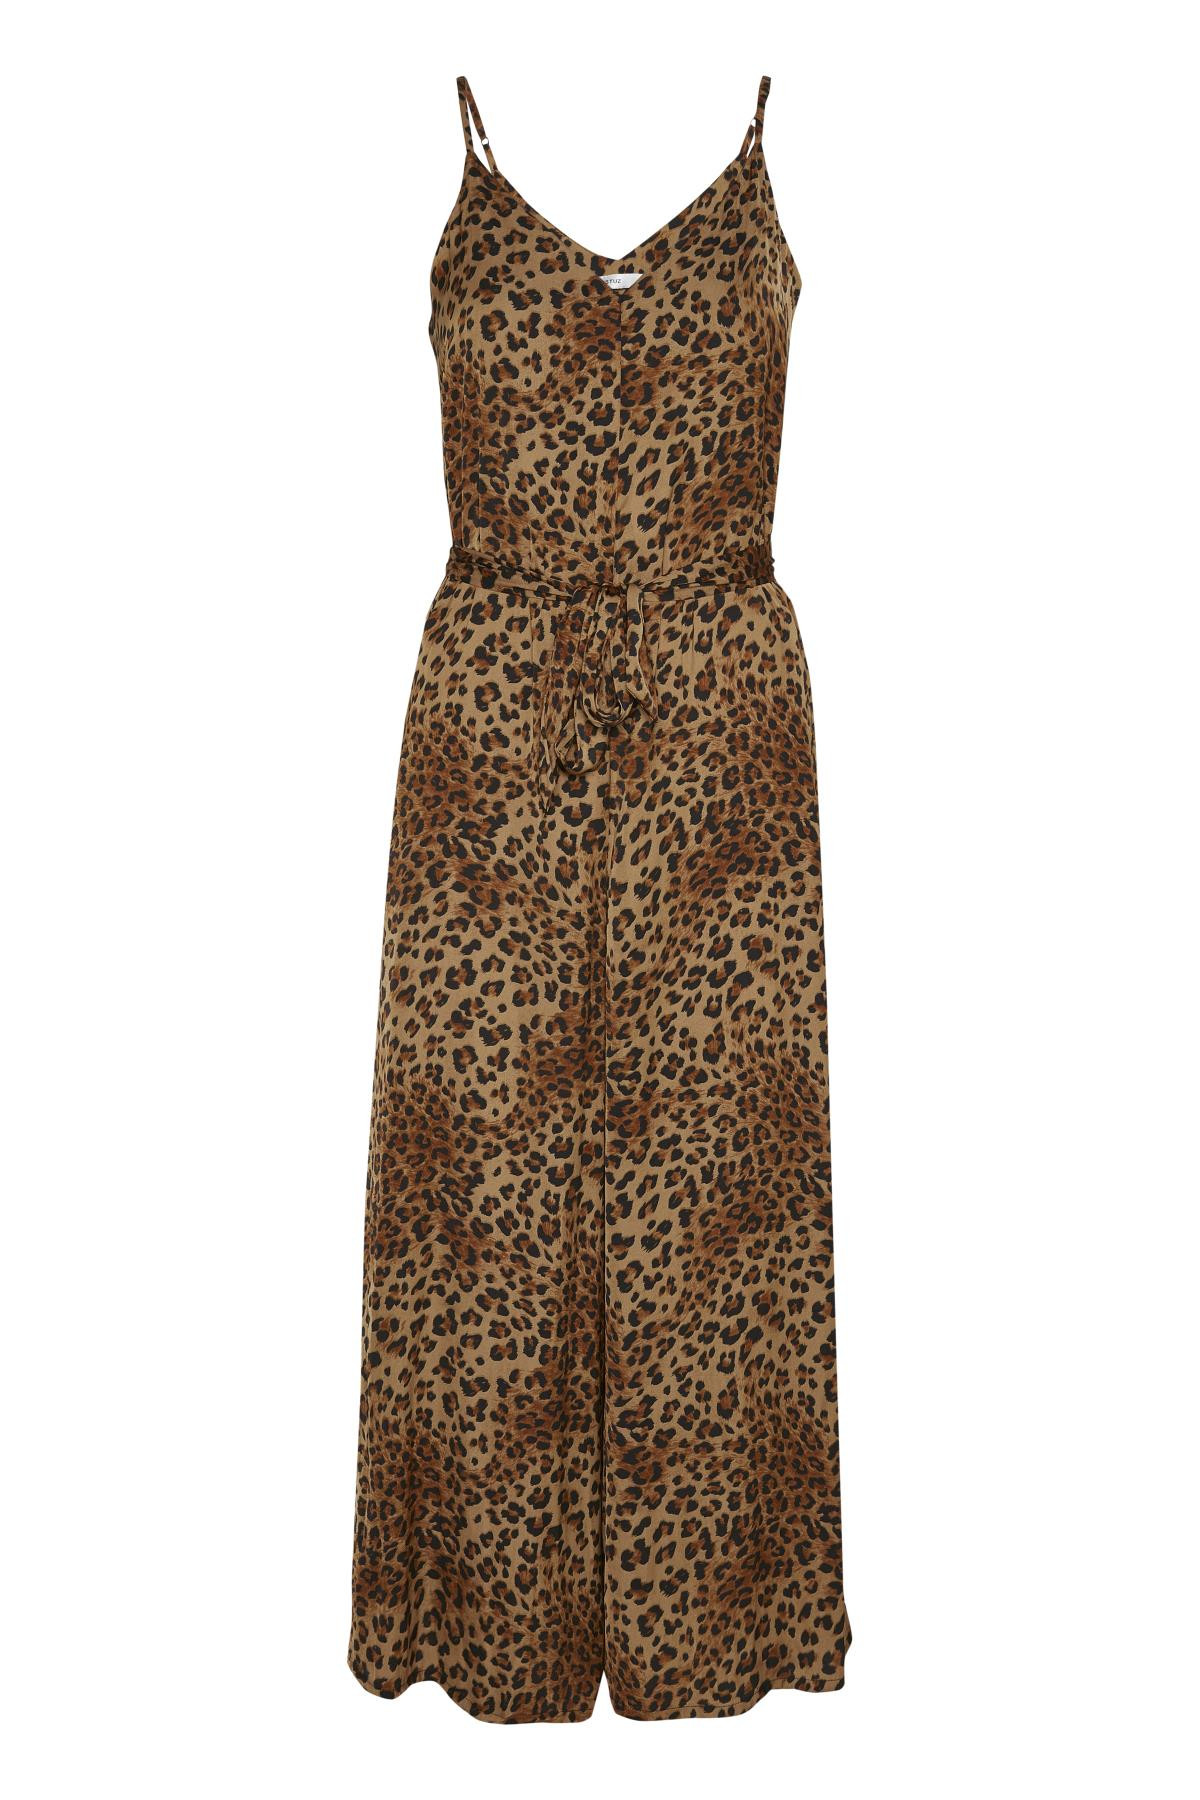 Image of   GESTUZ JANEGZ JUMPSUIT (Brown Leo 90583, 40)